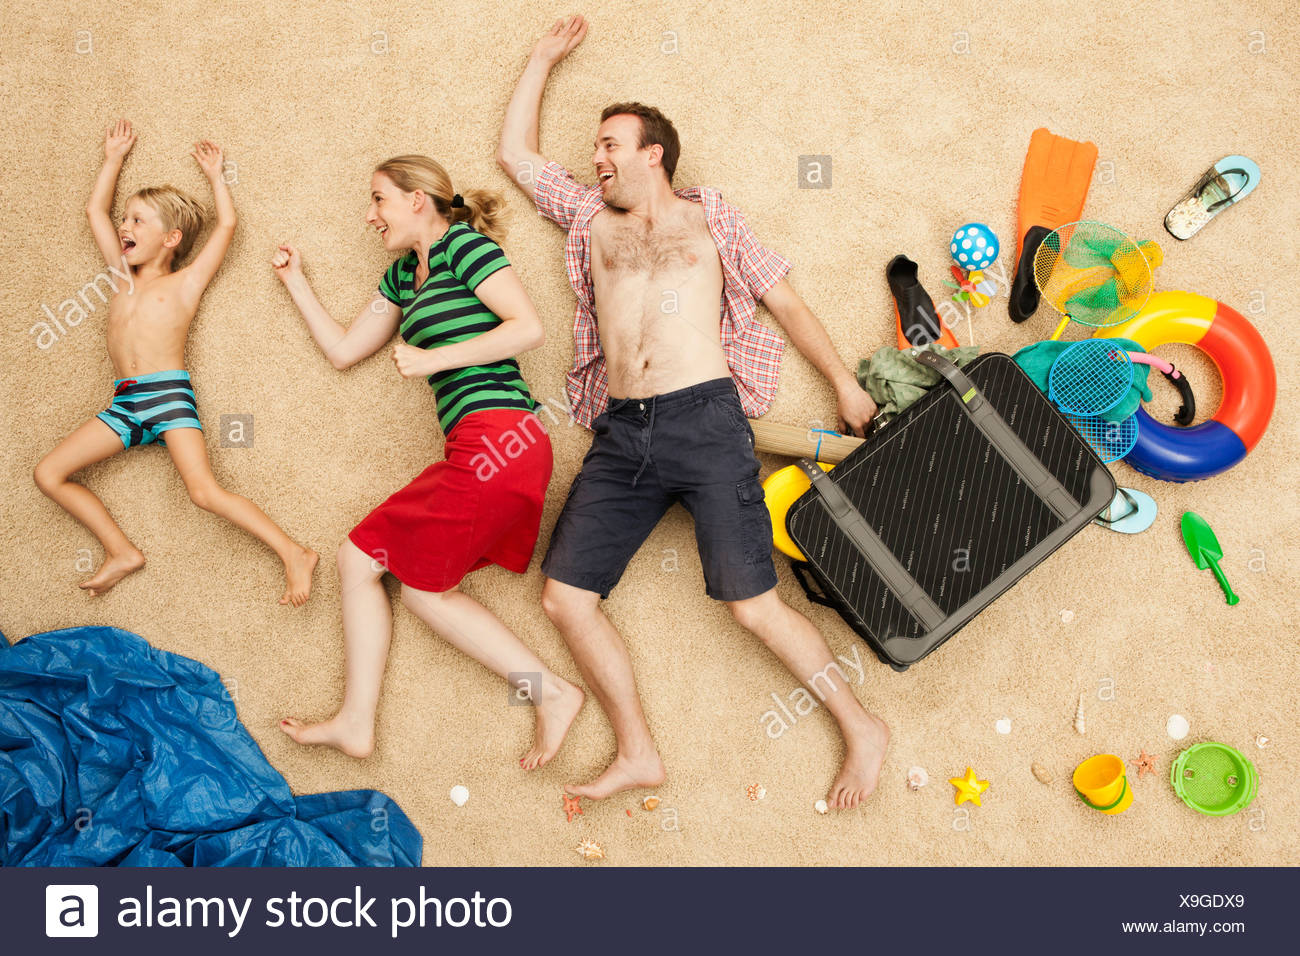 Germany, Family with toys and baggage at beach - Stock Image